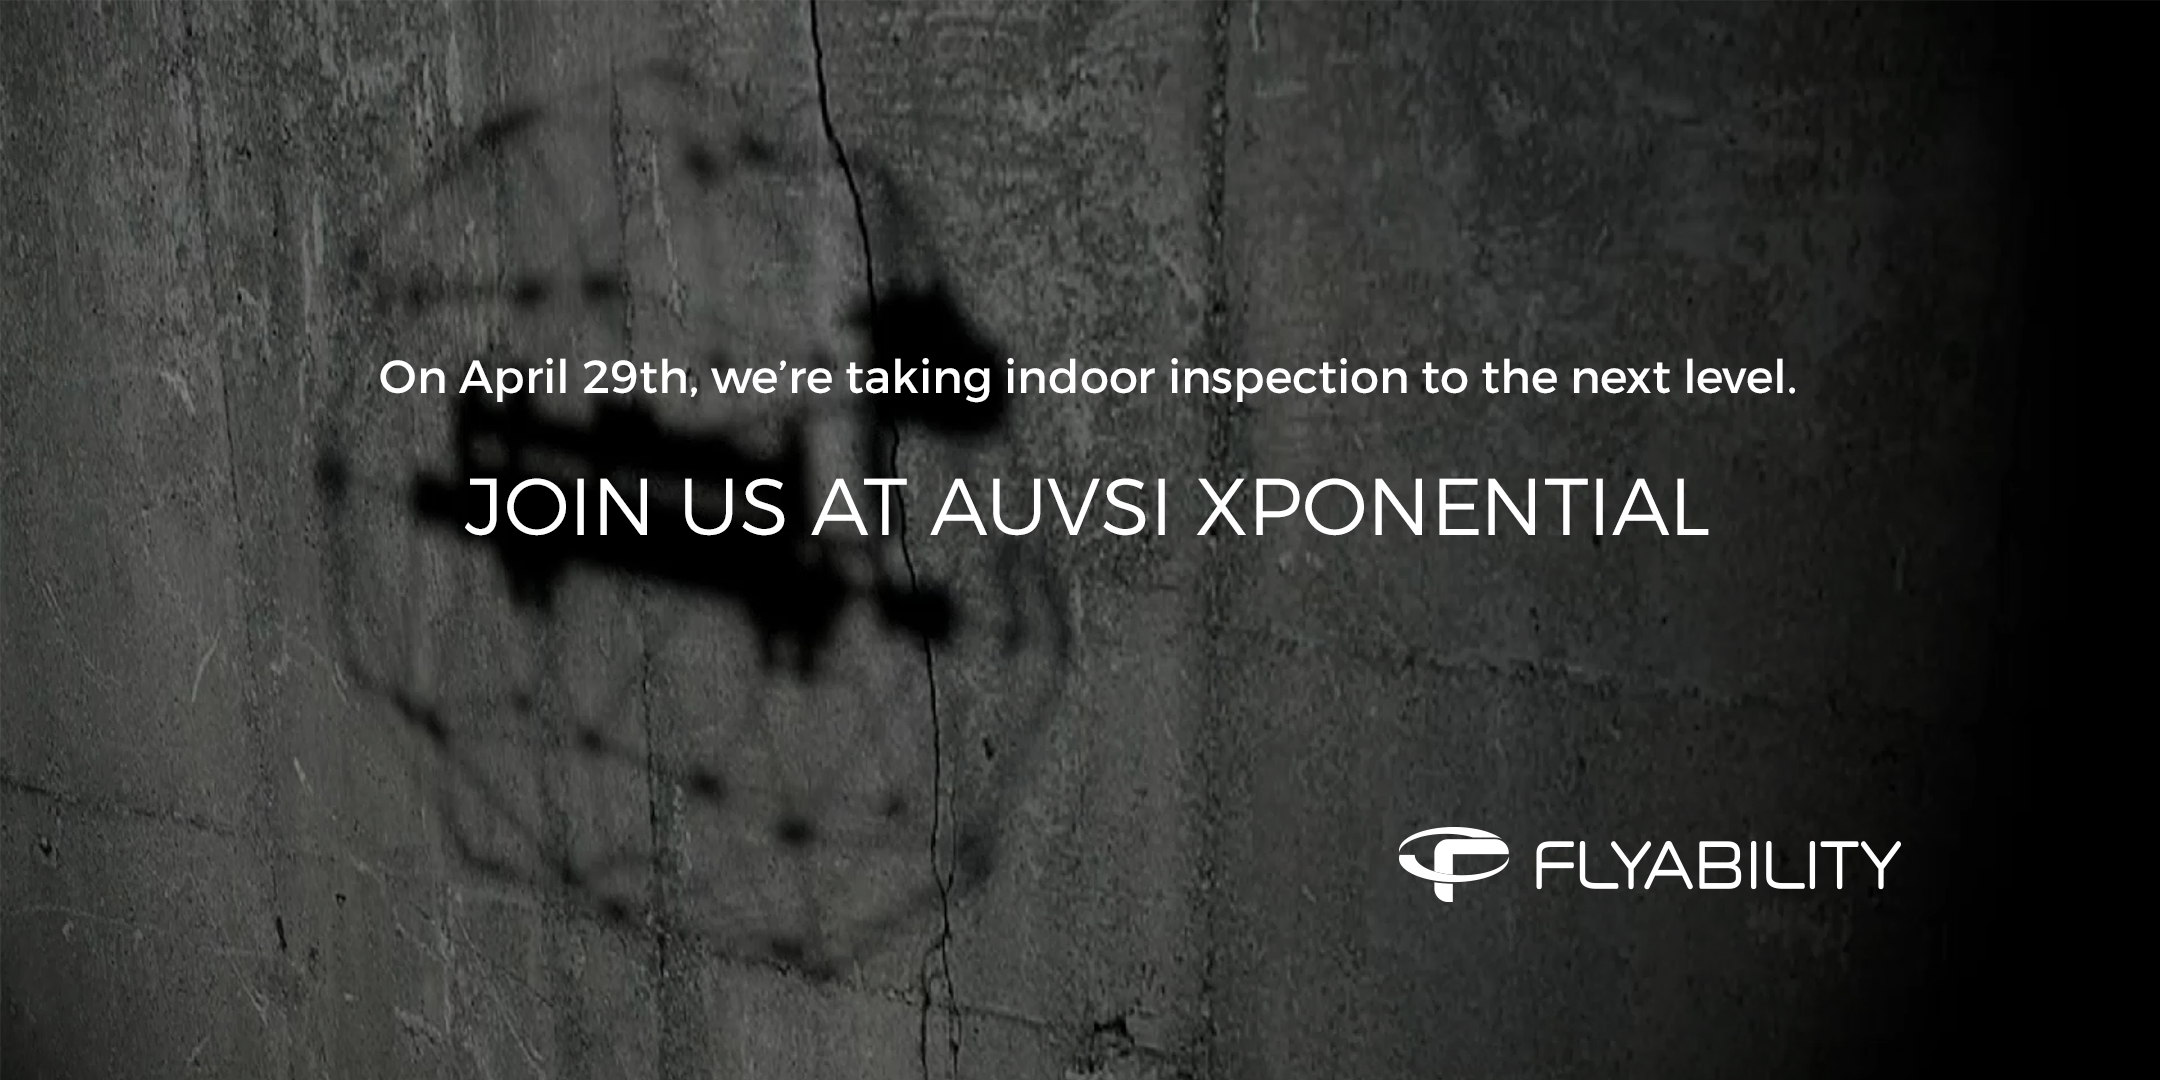 AUVSI April 29 - DISCOVER THE FUTURE OF INDOOR INSPECTION